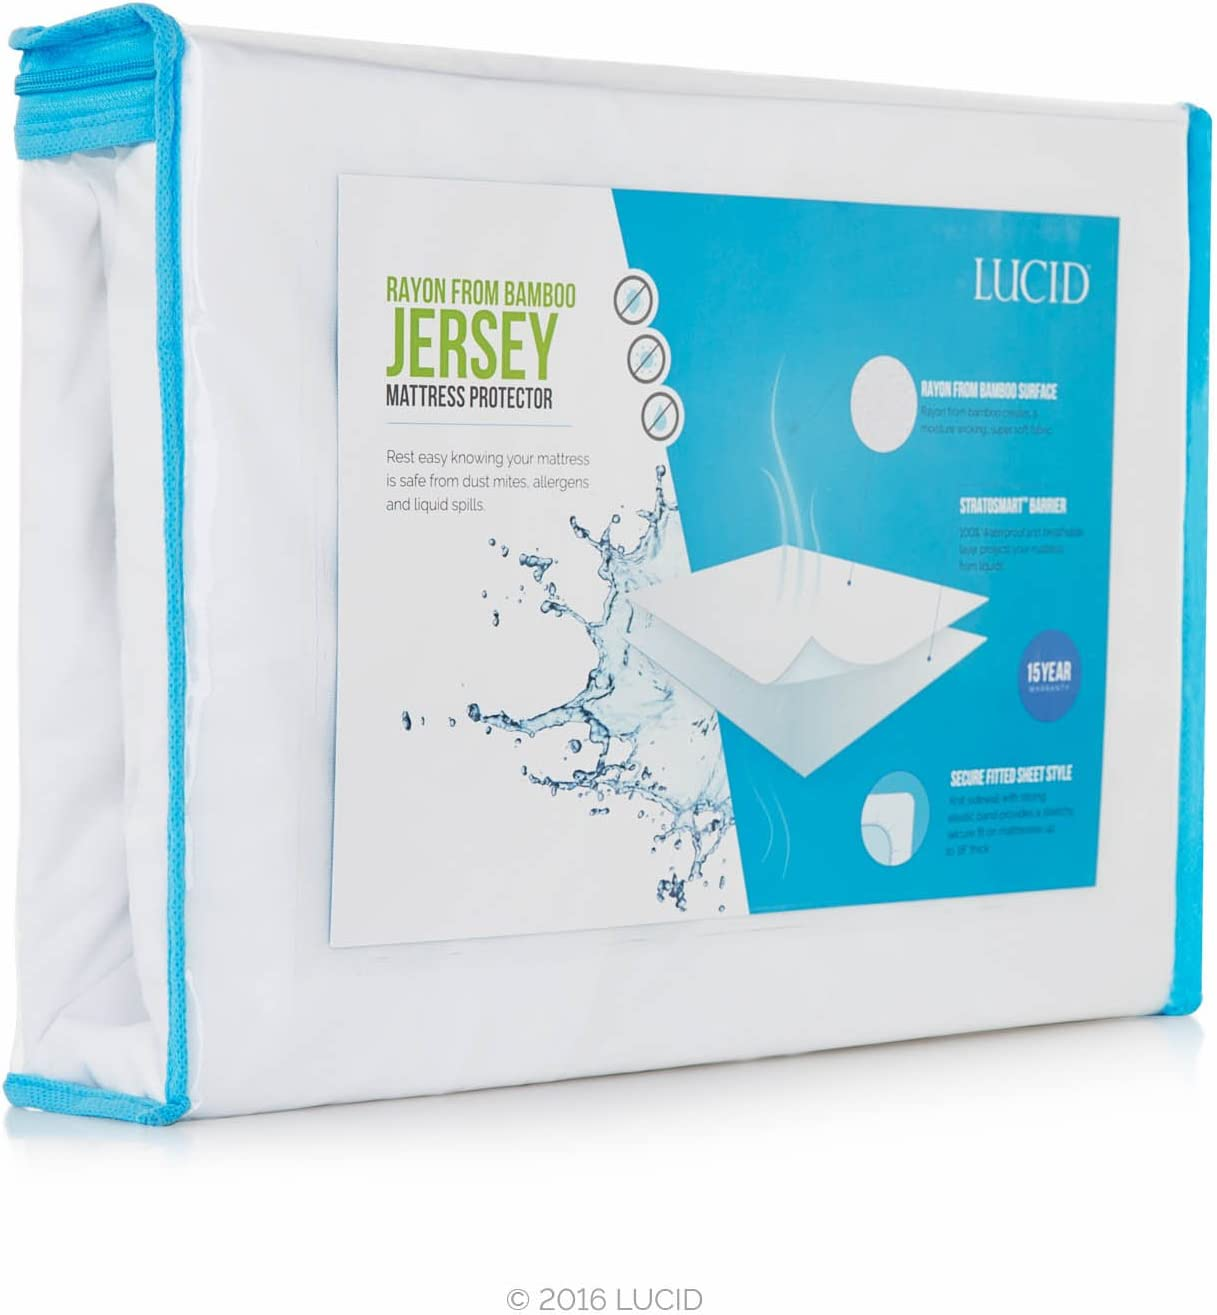 LUCID Premium Rayon from Bamboo Jersey Mattress Protector - Ultra Soft - Waterproof - Dust Mite Proof - Hypoallergenic - Queen